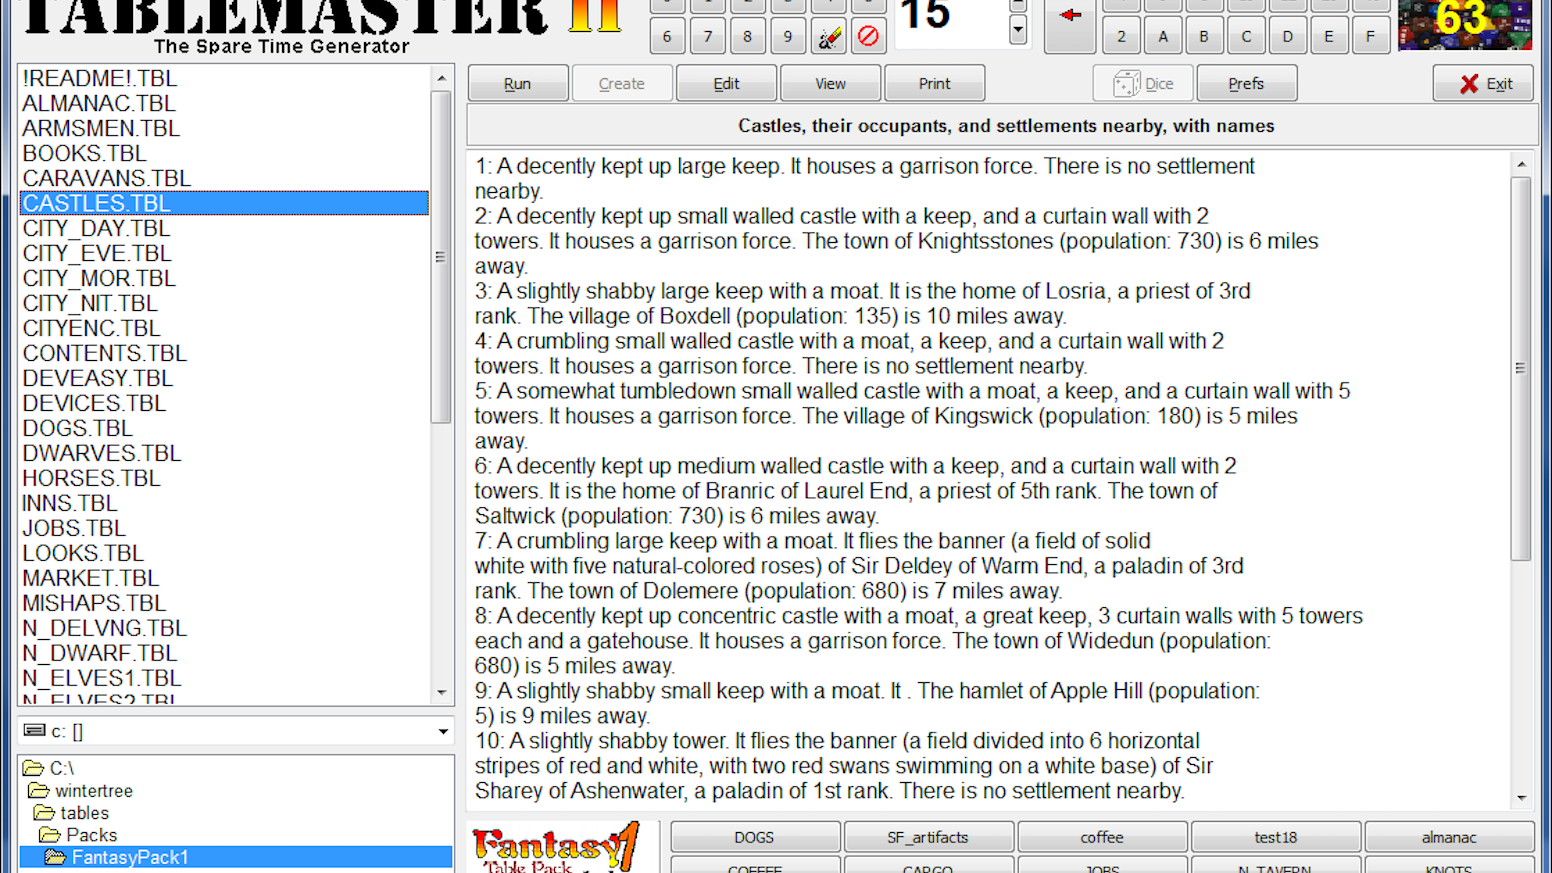 TableMaster II Gamemaster's Aid Software by Jean McGuire